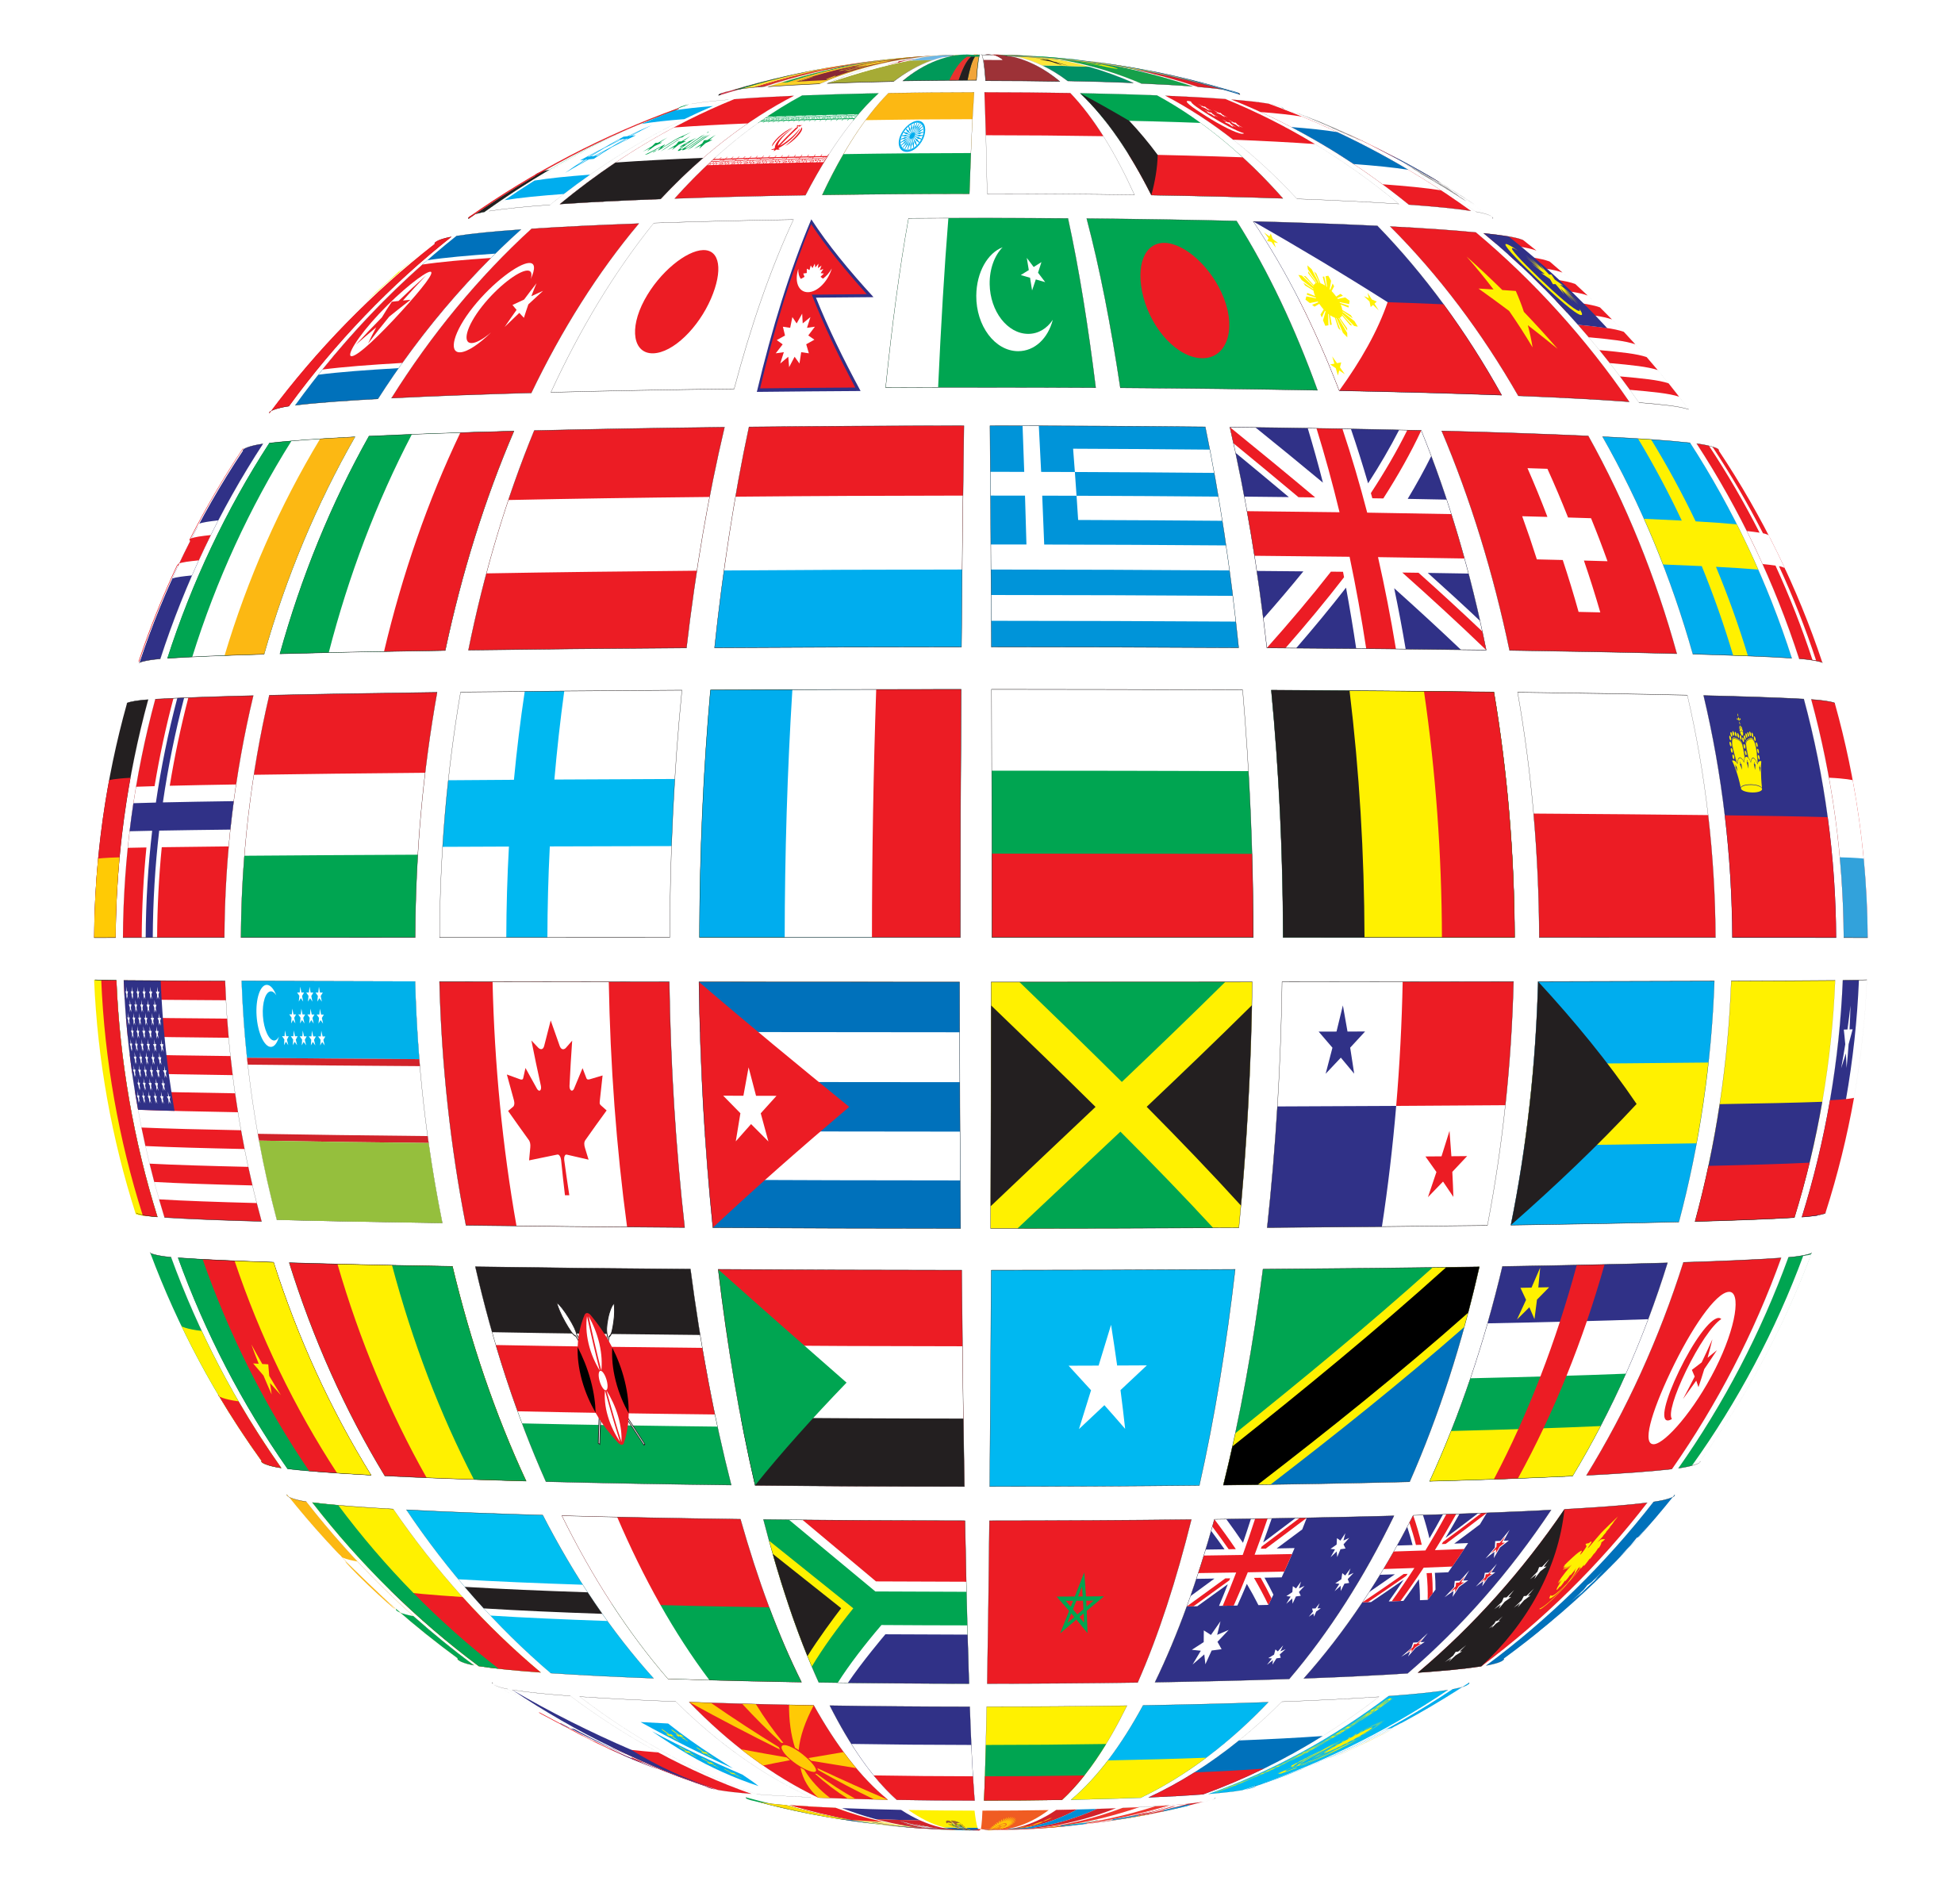 World Flags Clipart - Clipart Kid